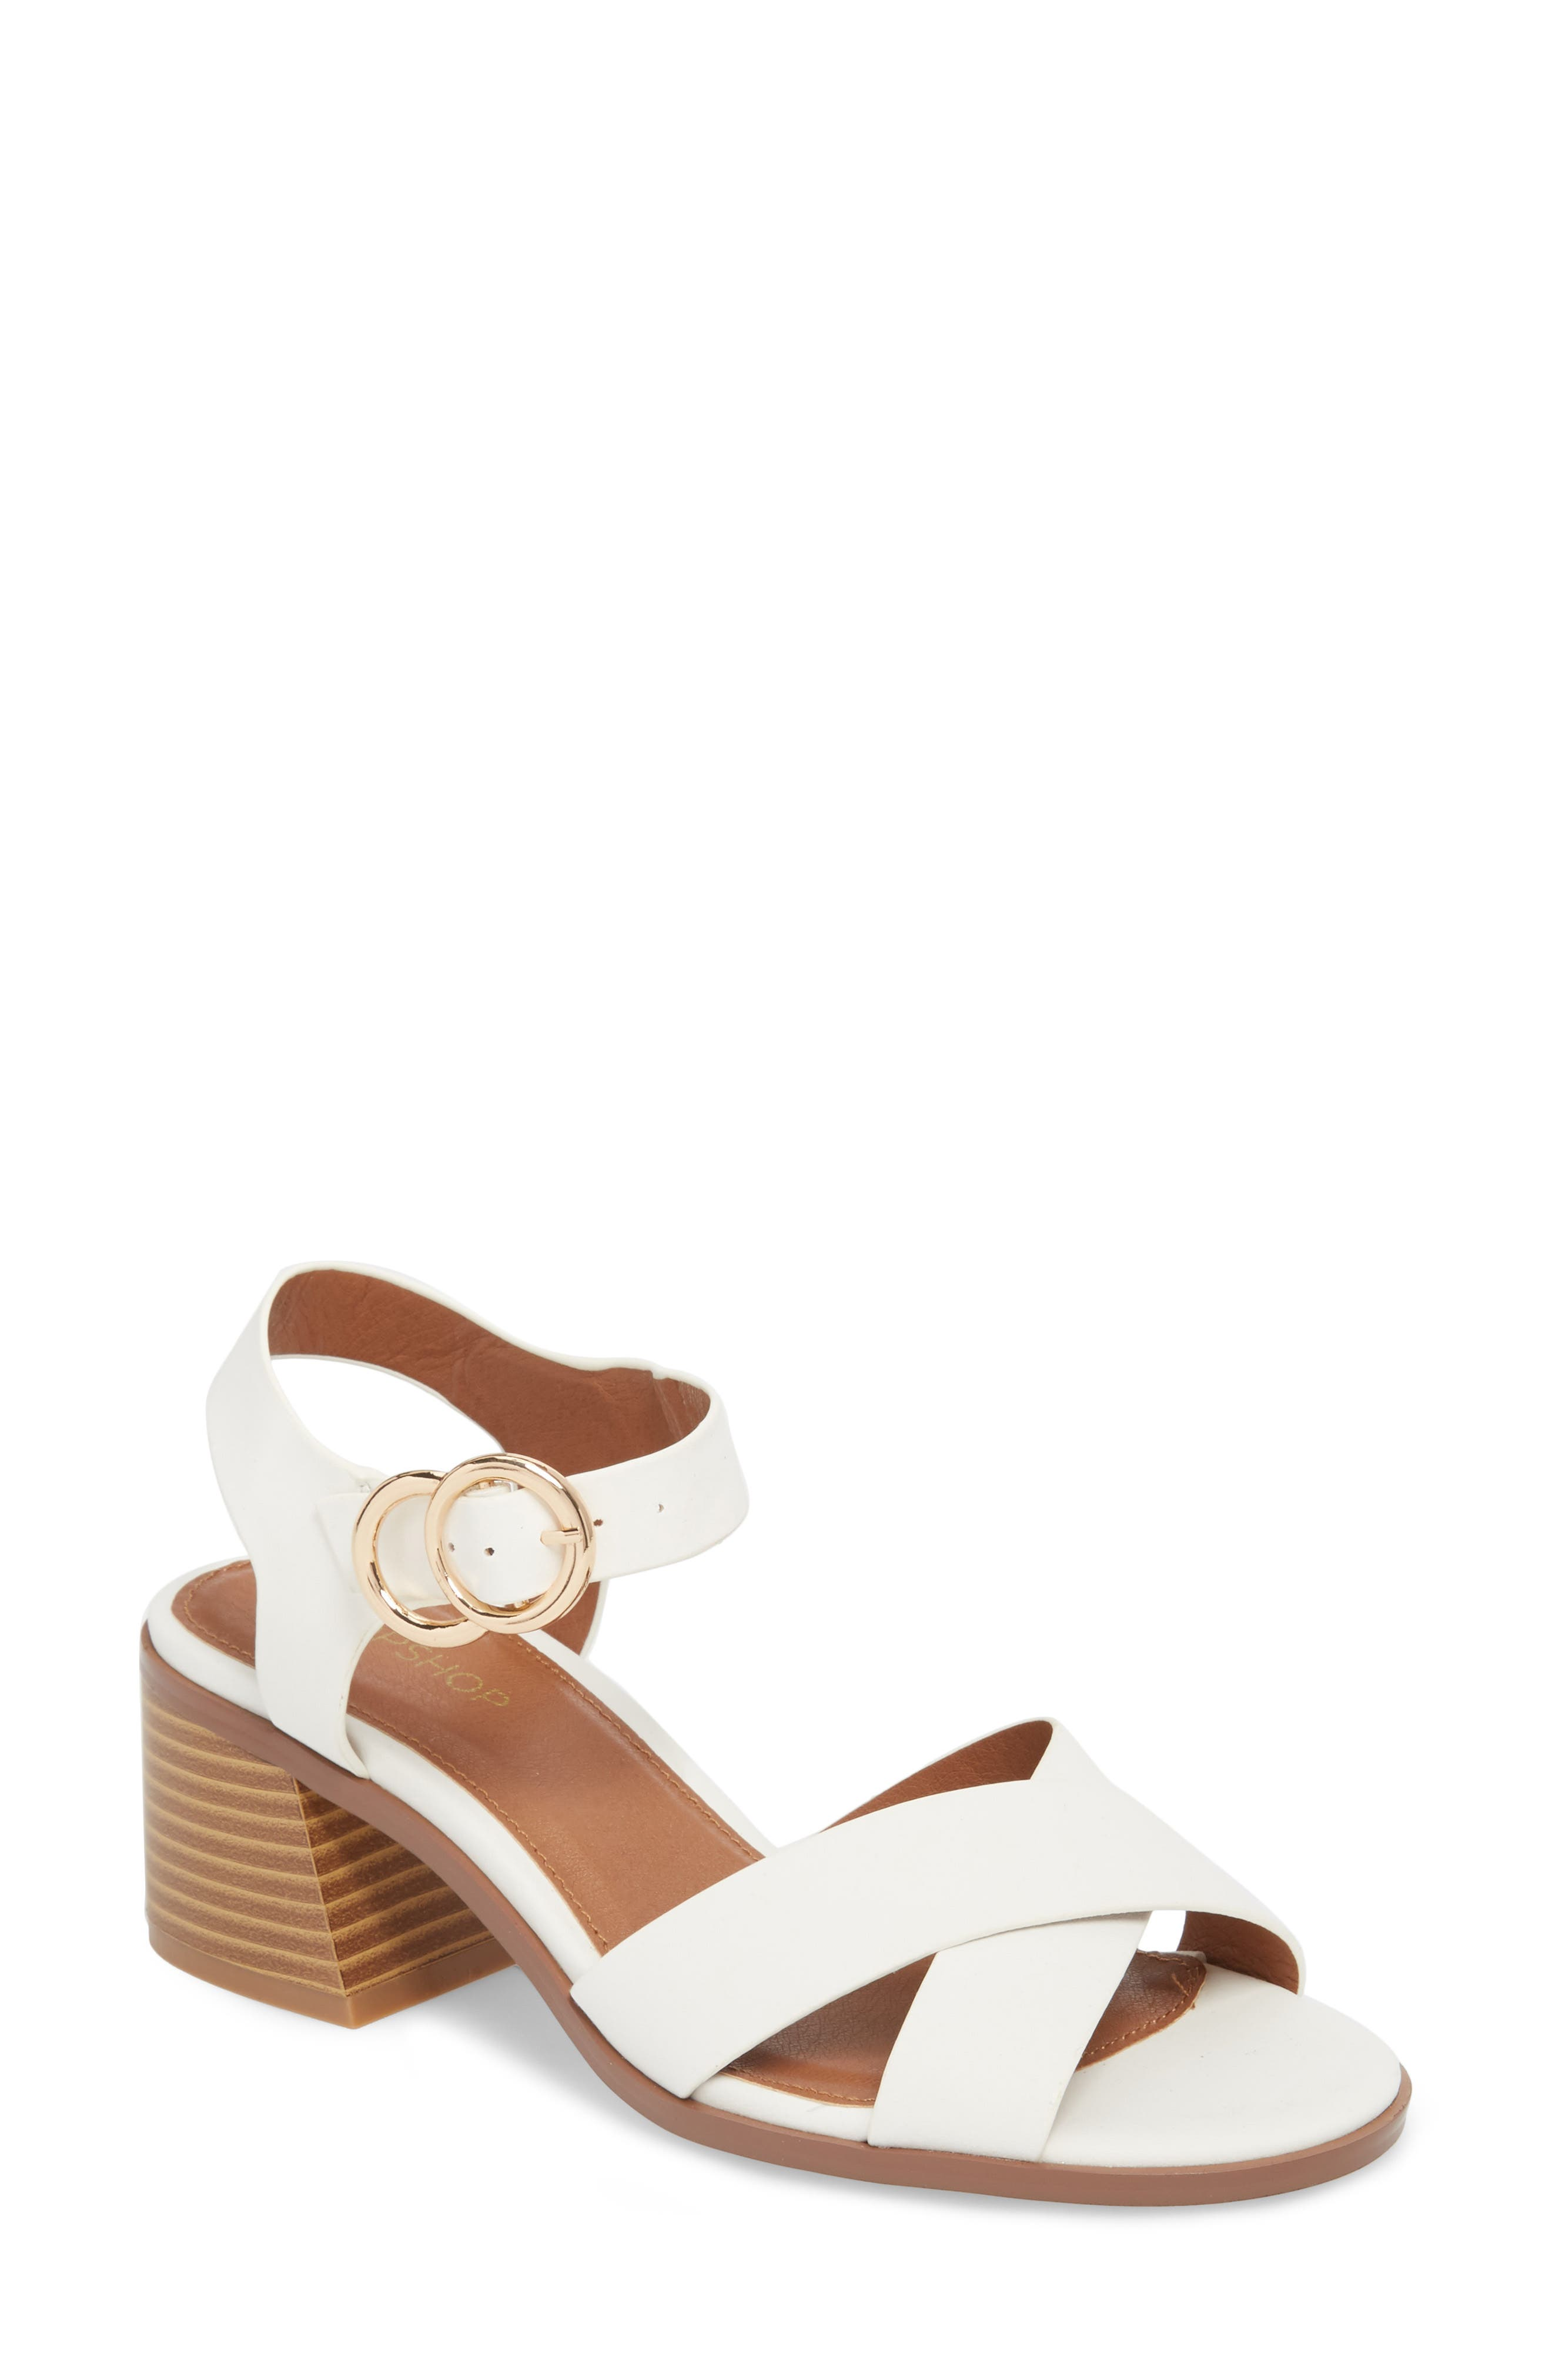 Dee Dee Block Heel Sandal,                             Main thumbnail 1, color,                             White Multi